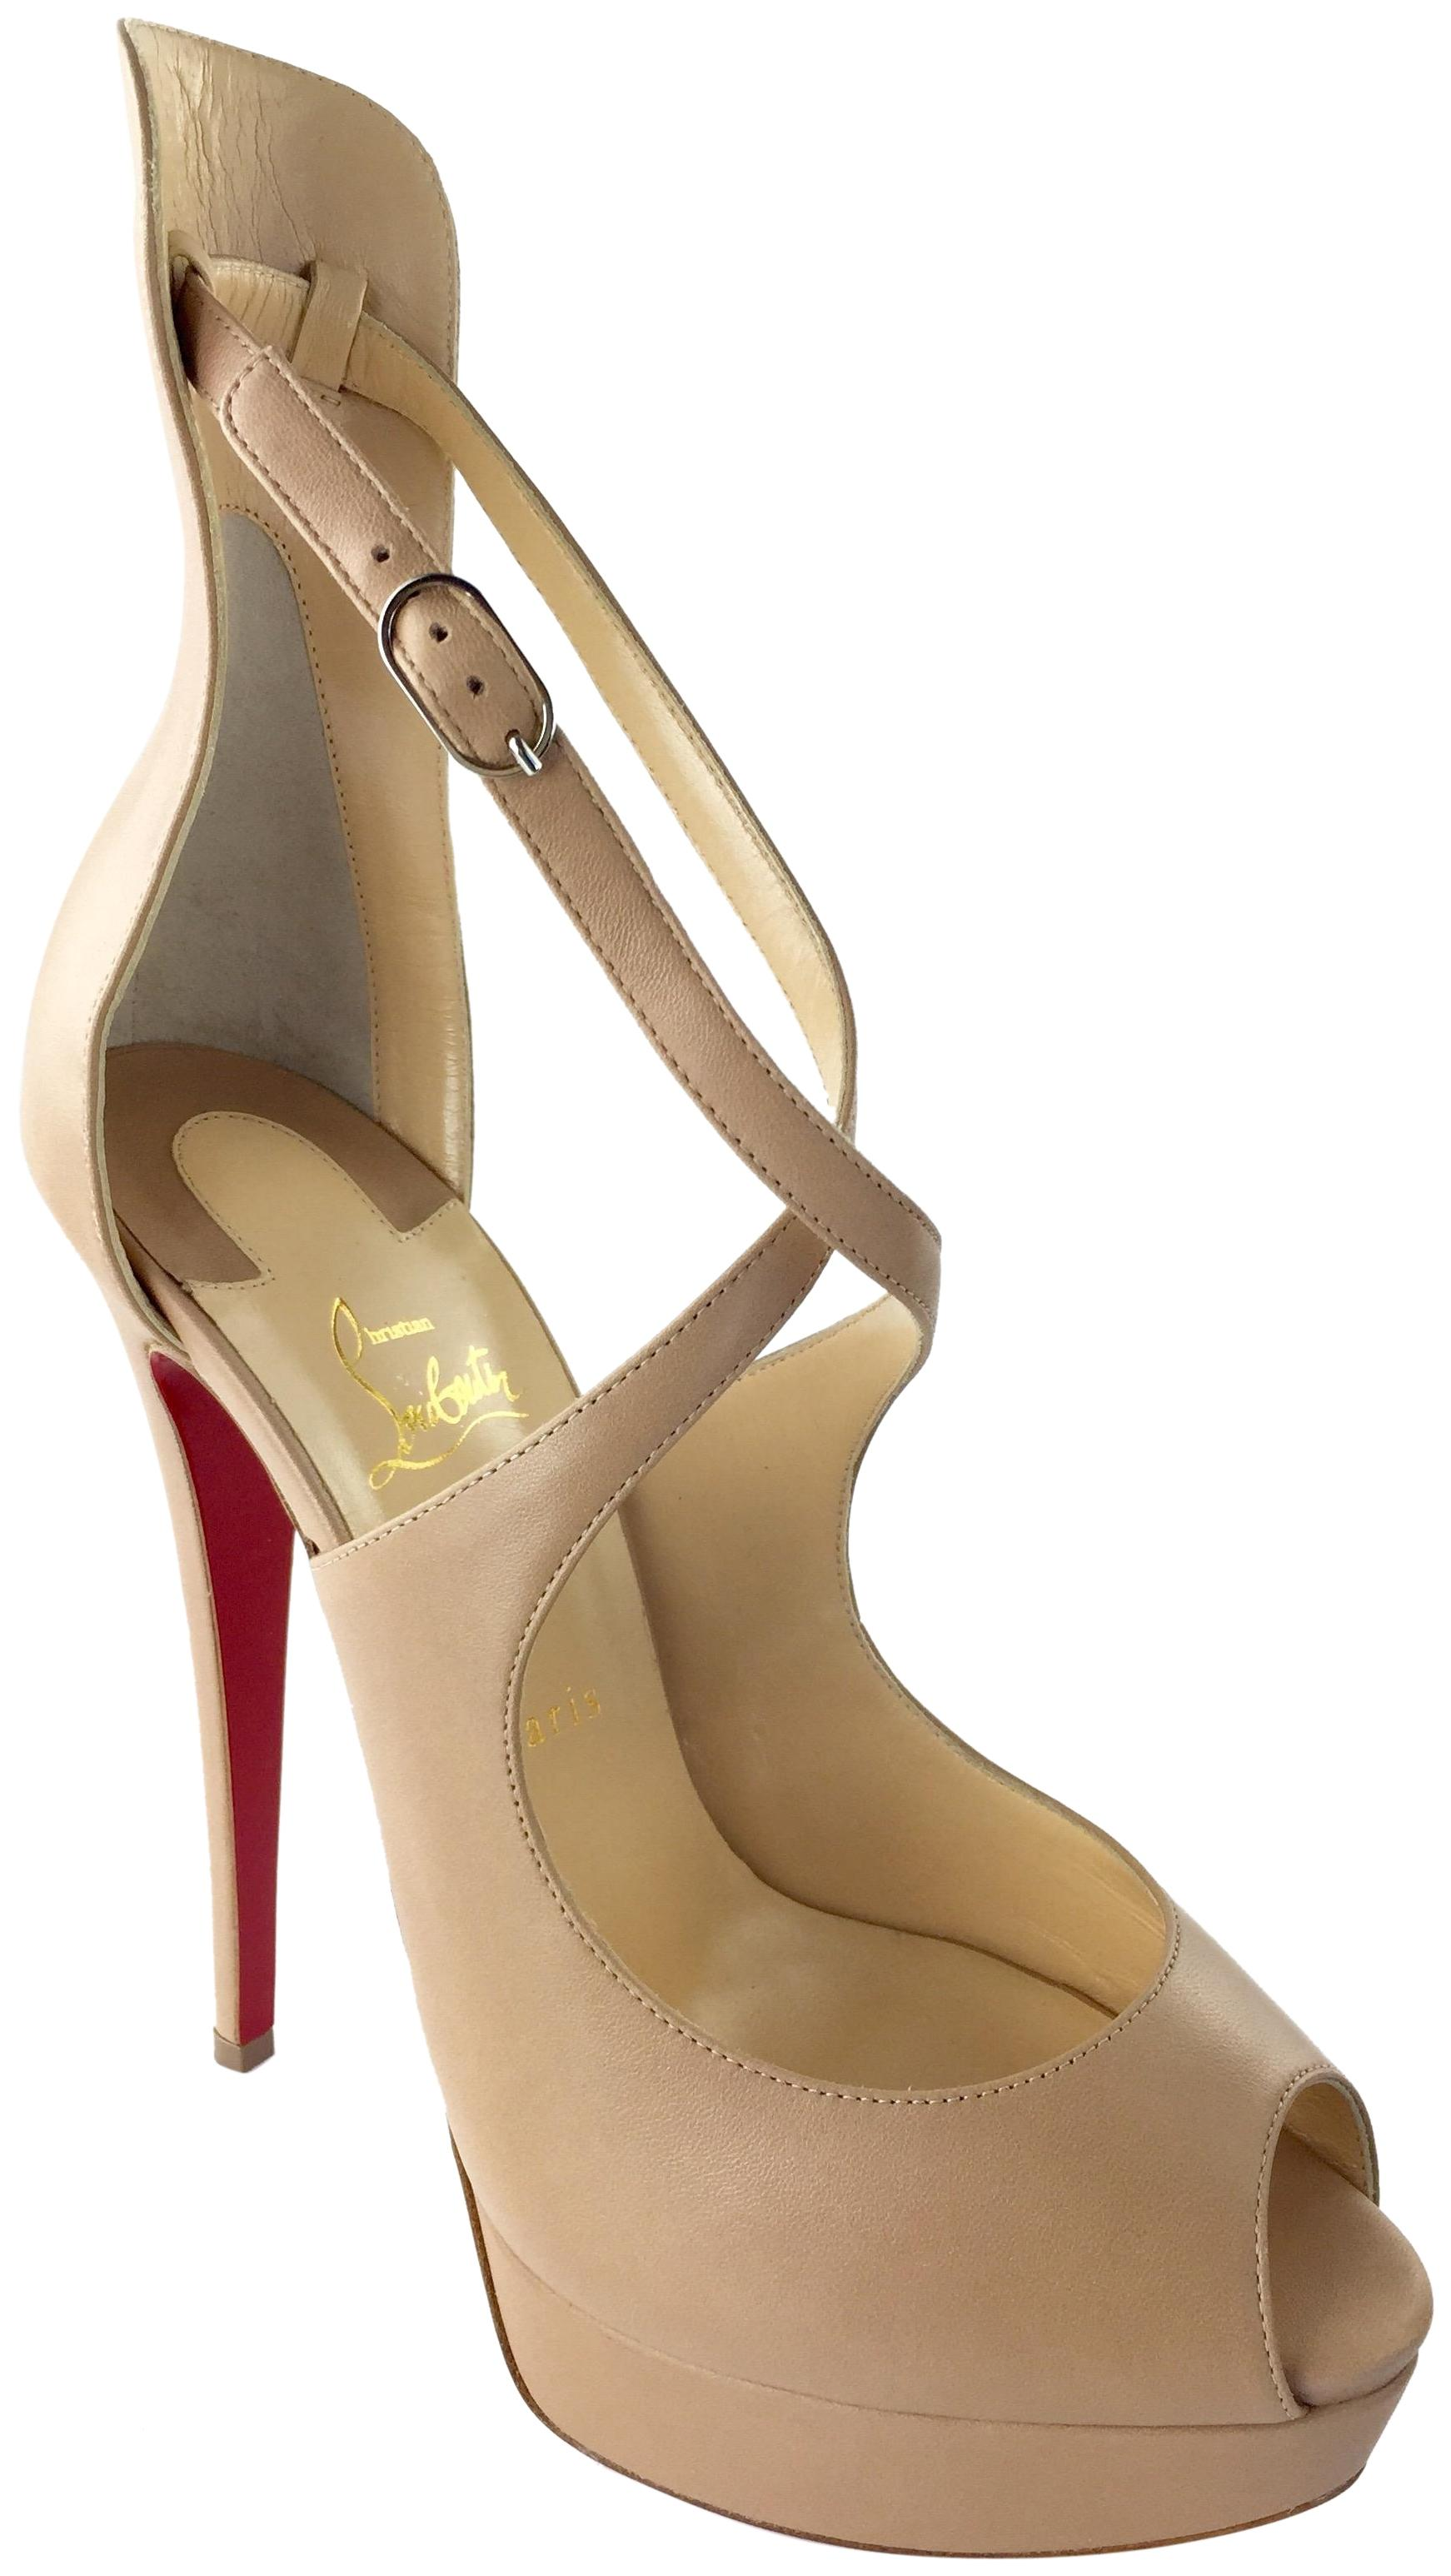 best sneakers 4ccf6 6a798 Christian Louboutin Nude Marlenalta 150 Nappa Pumps Pumps ...